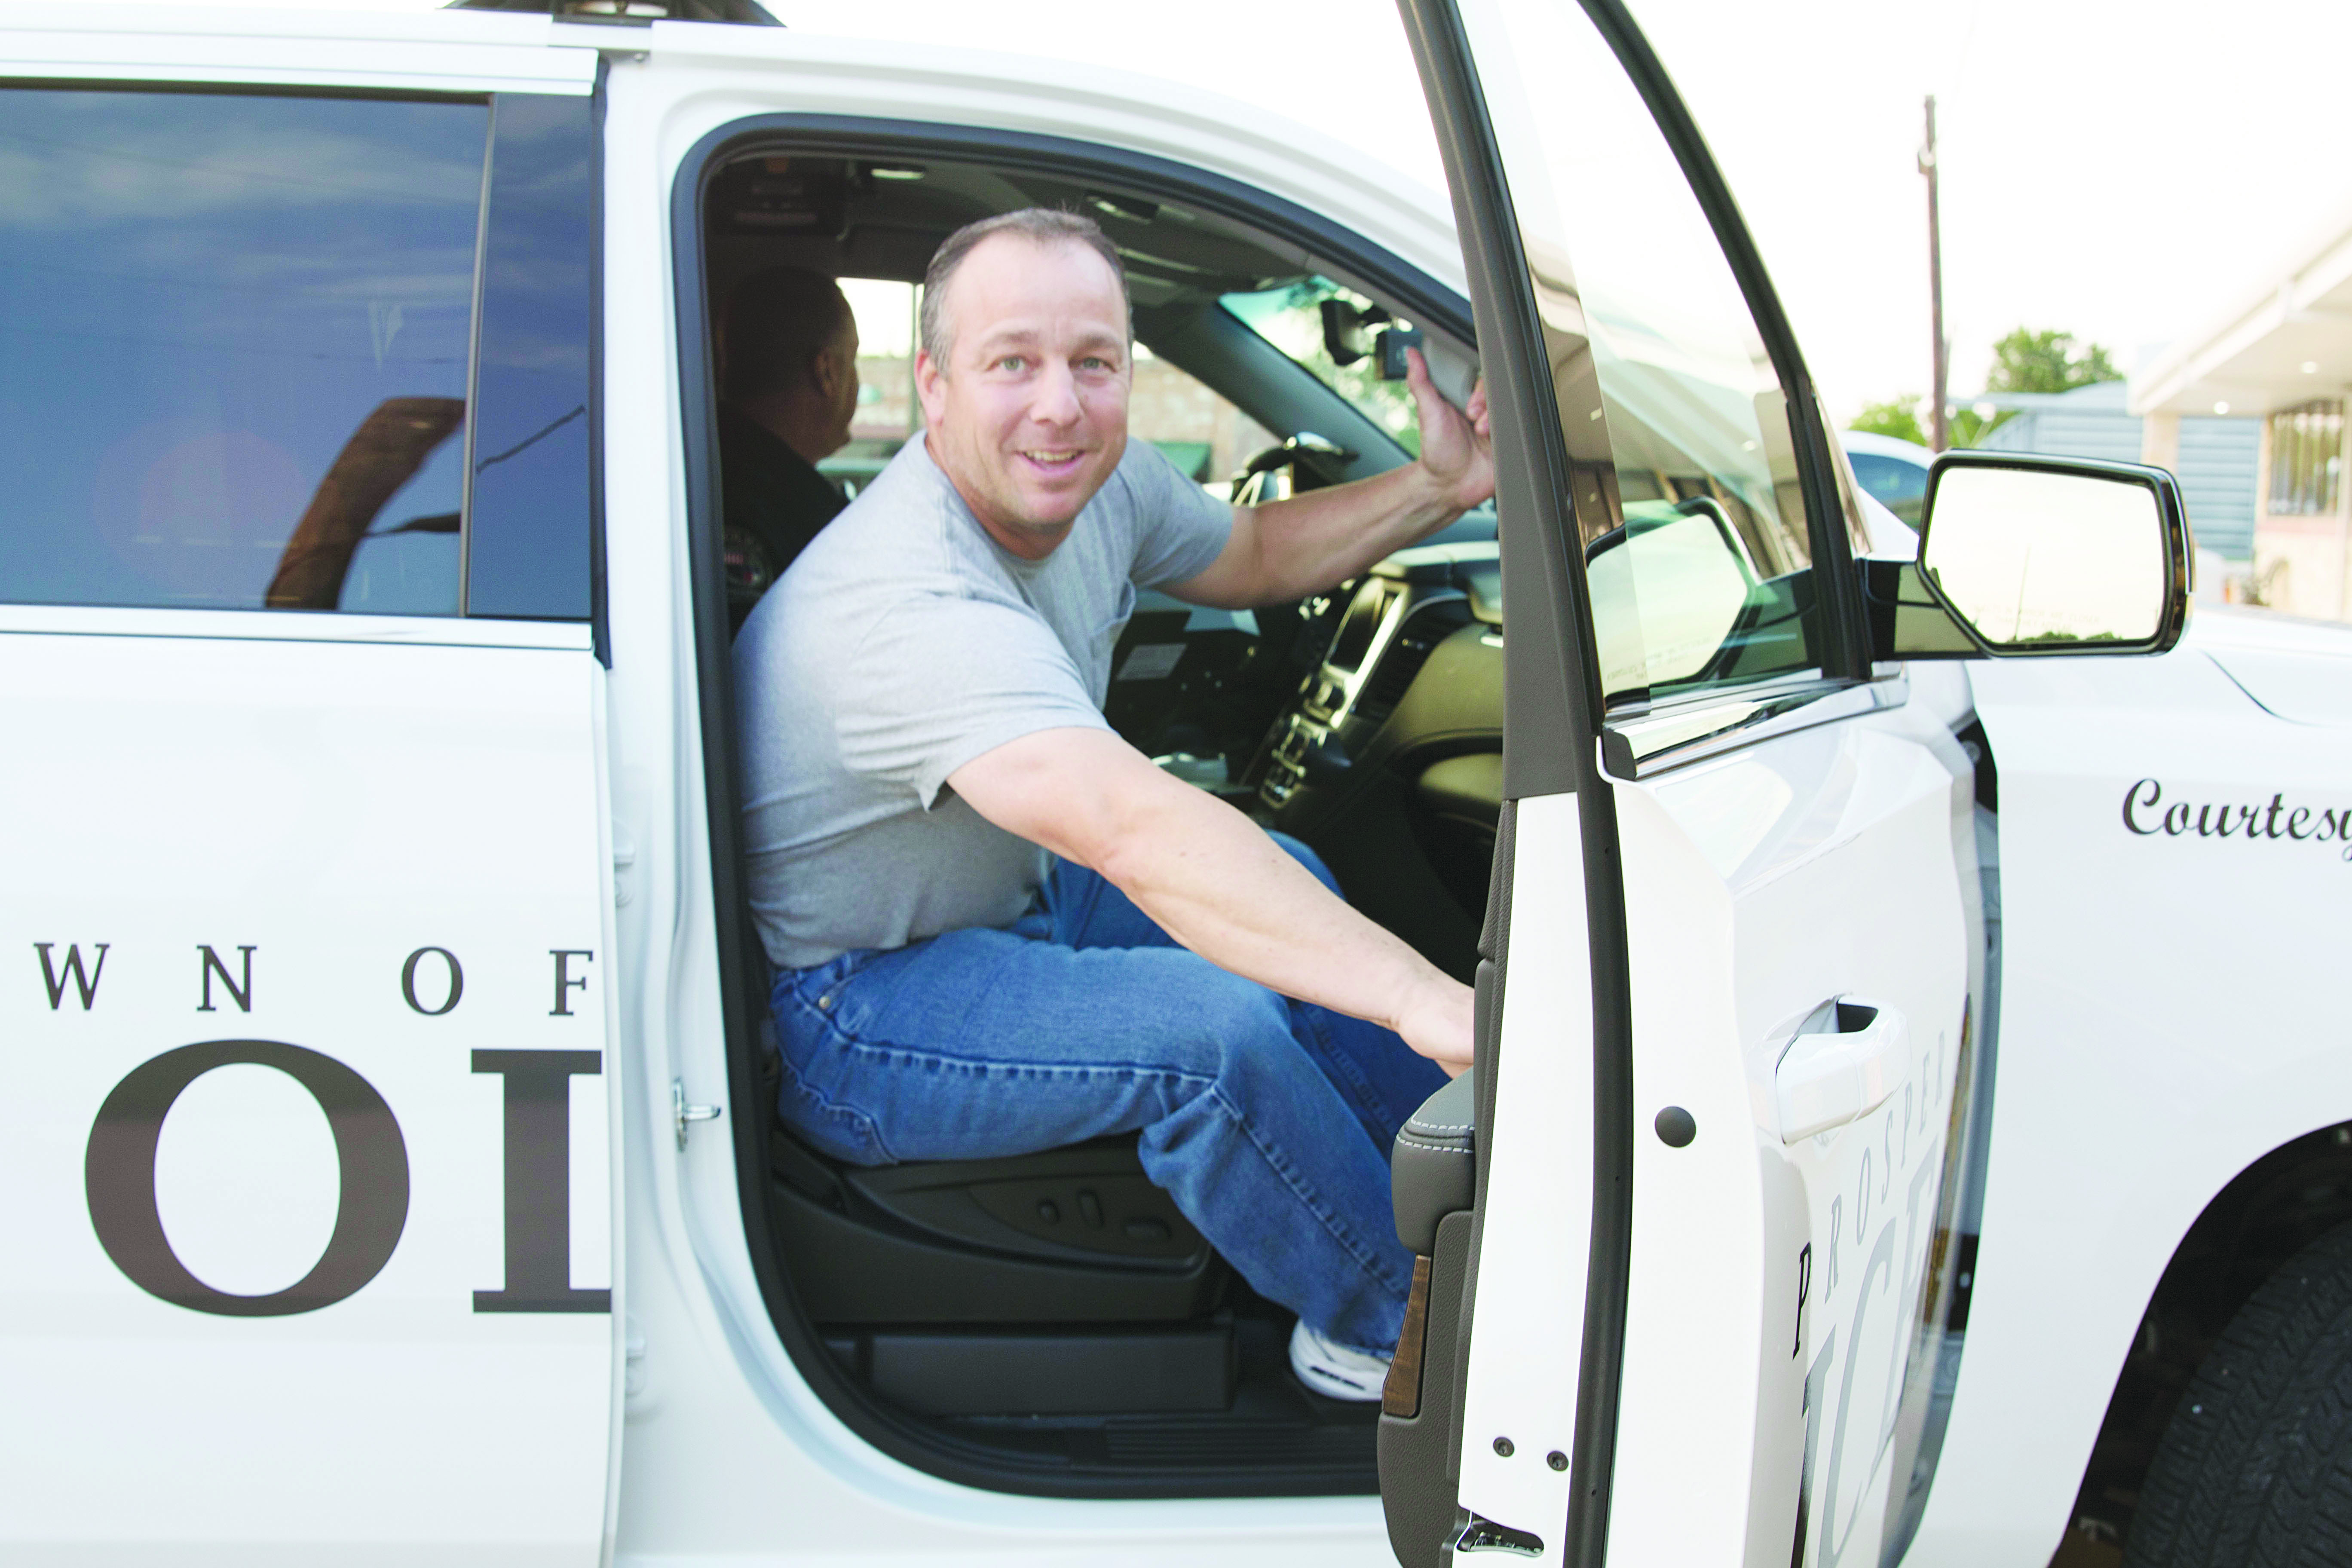 Councilor rides with police